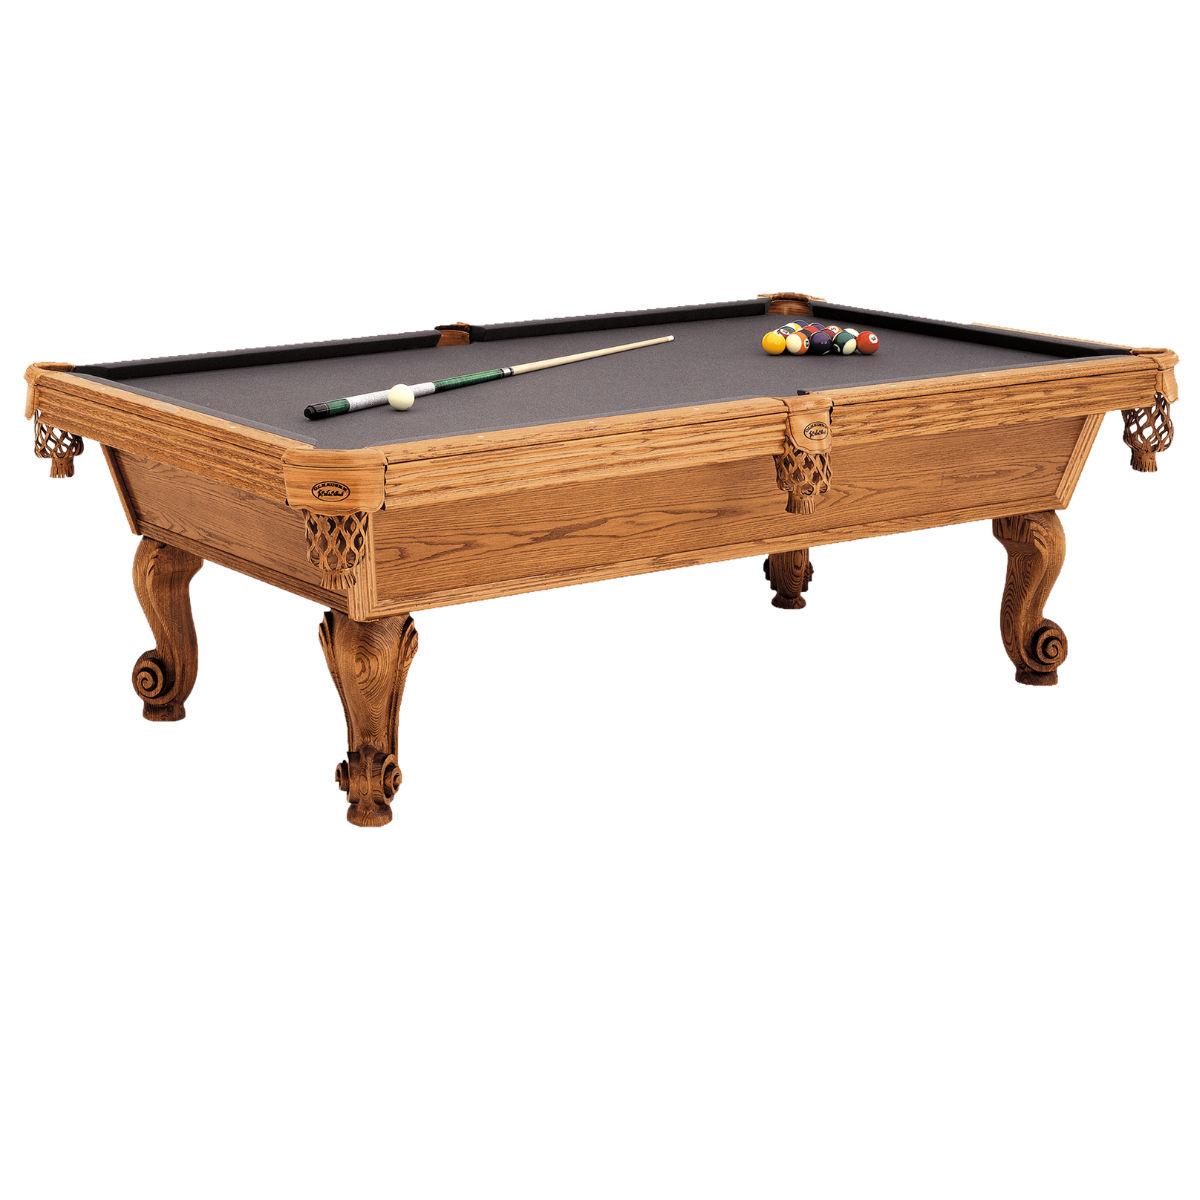 New Provincial Pool Table Olhausen Montgomeryville Pa